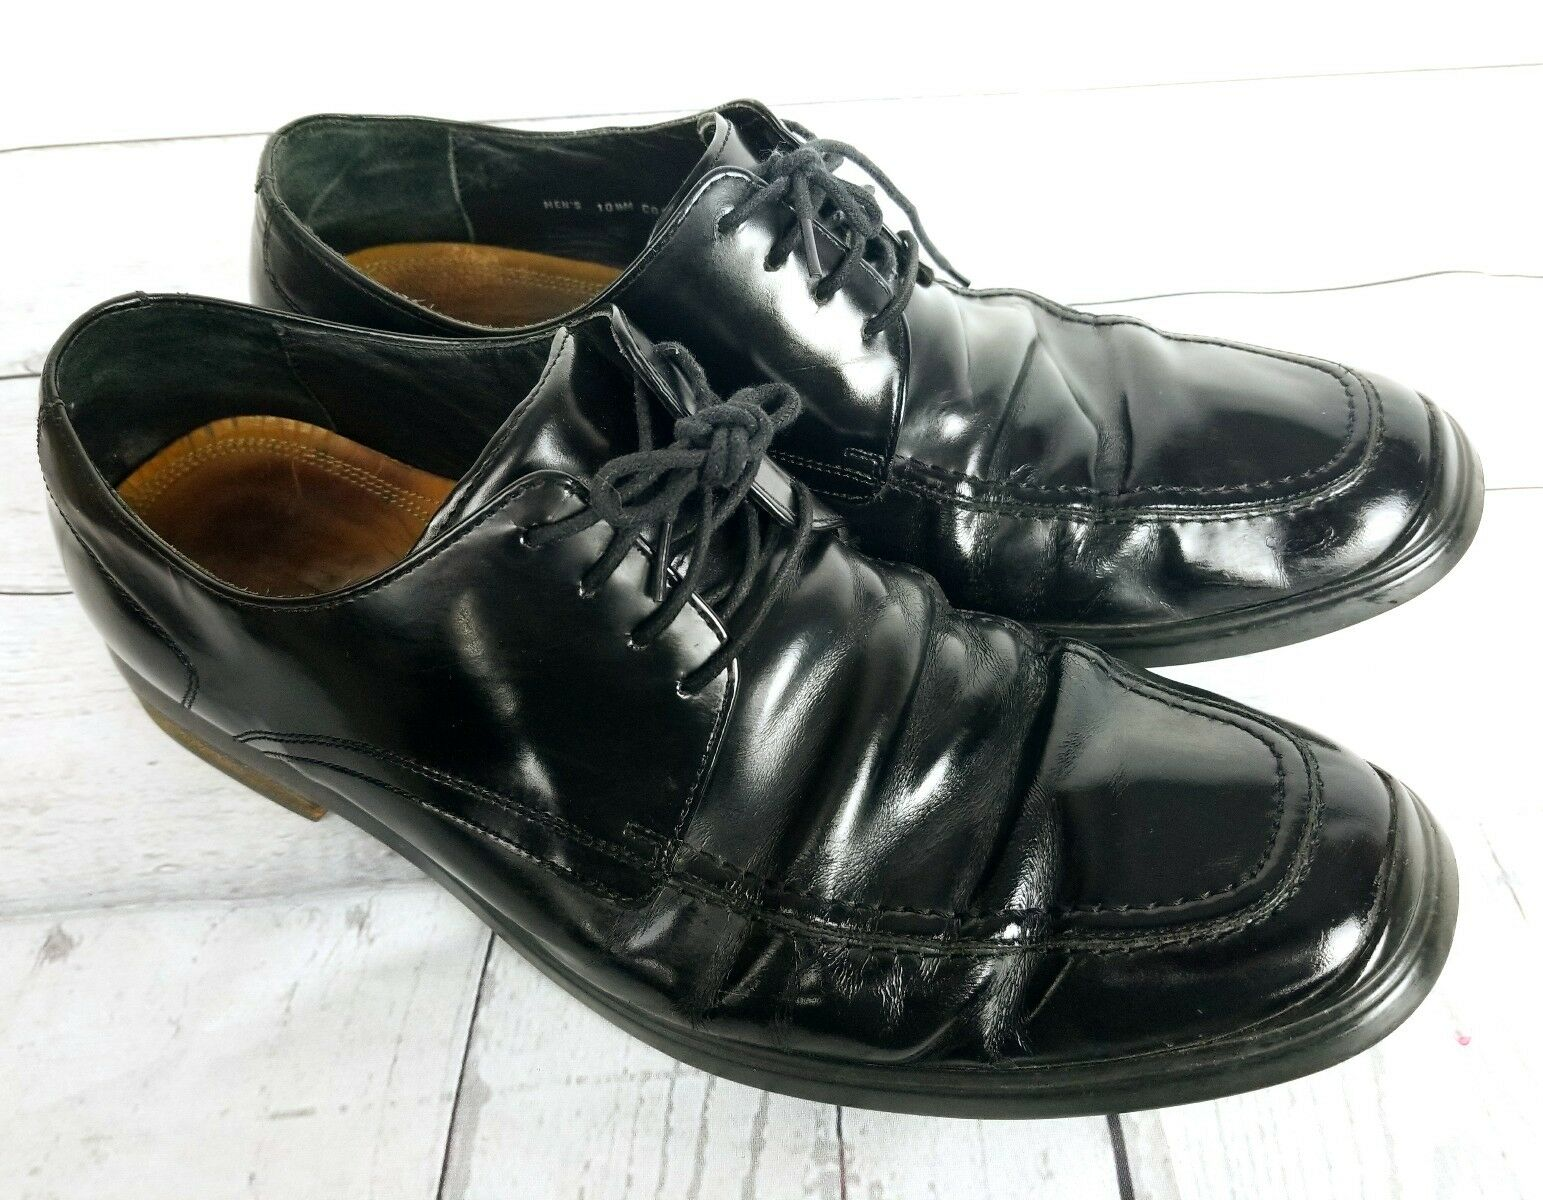 559d914e985 Cole Haan Air Mens 10.5 M Black Leather Apron Toe Oxford Casual ...